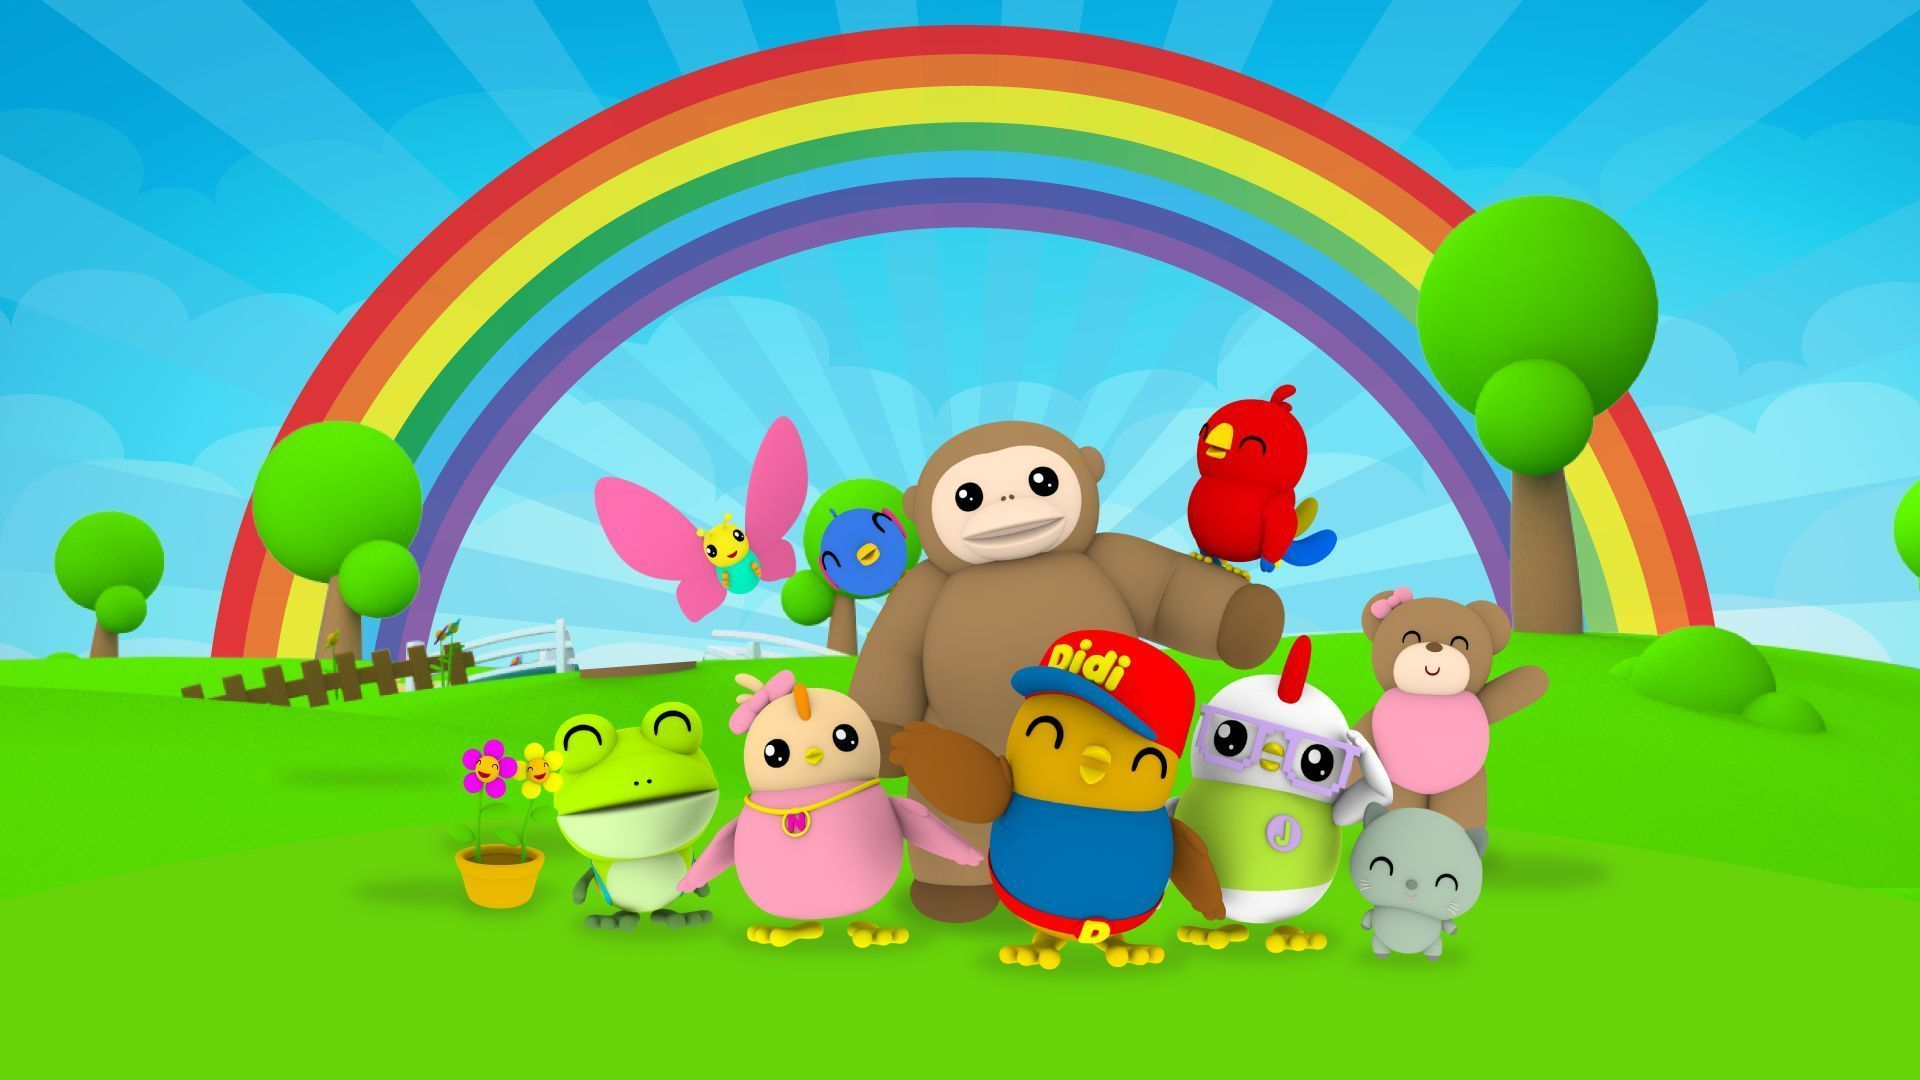 Didi And Friends Wallpapers Top Free Didi And Friends Backgrounds Wallpaperaccess